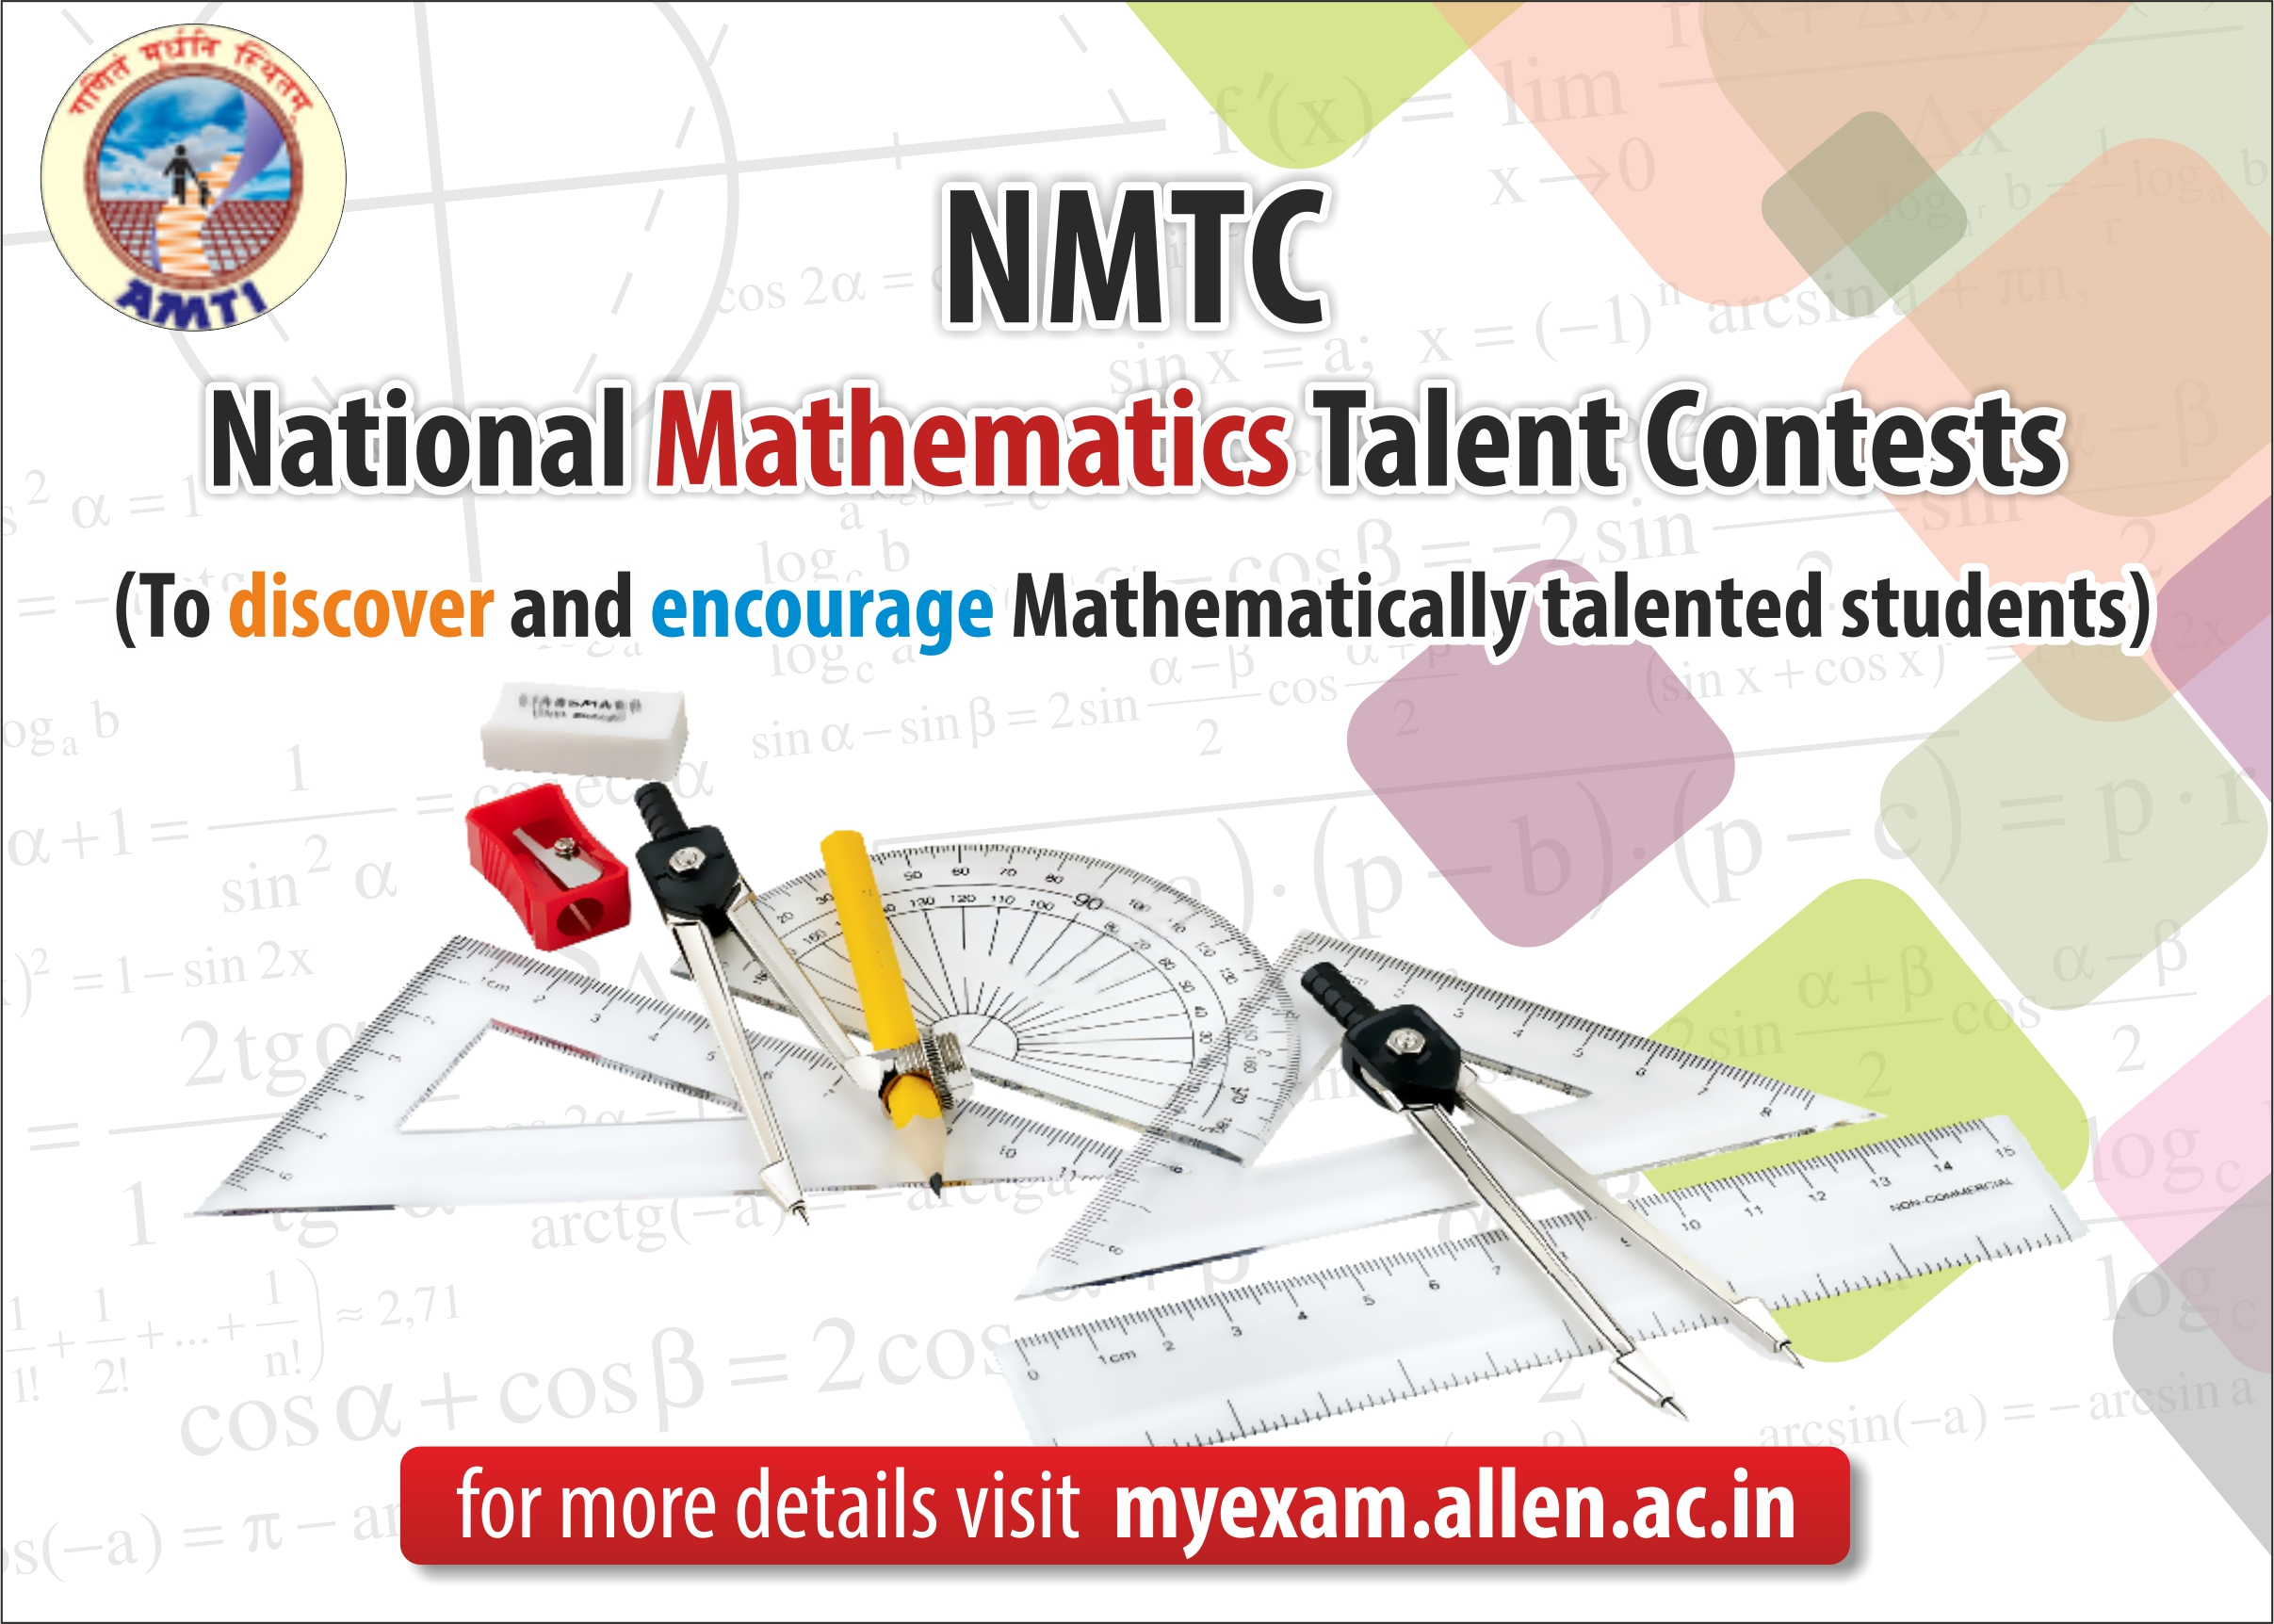 National Mathematics Talent Contents